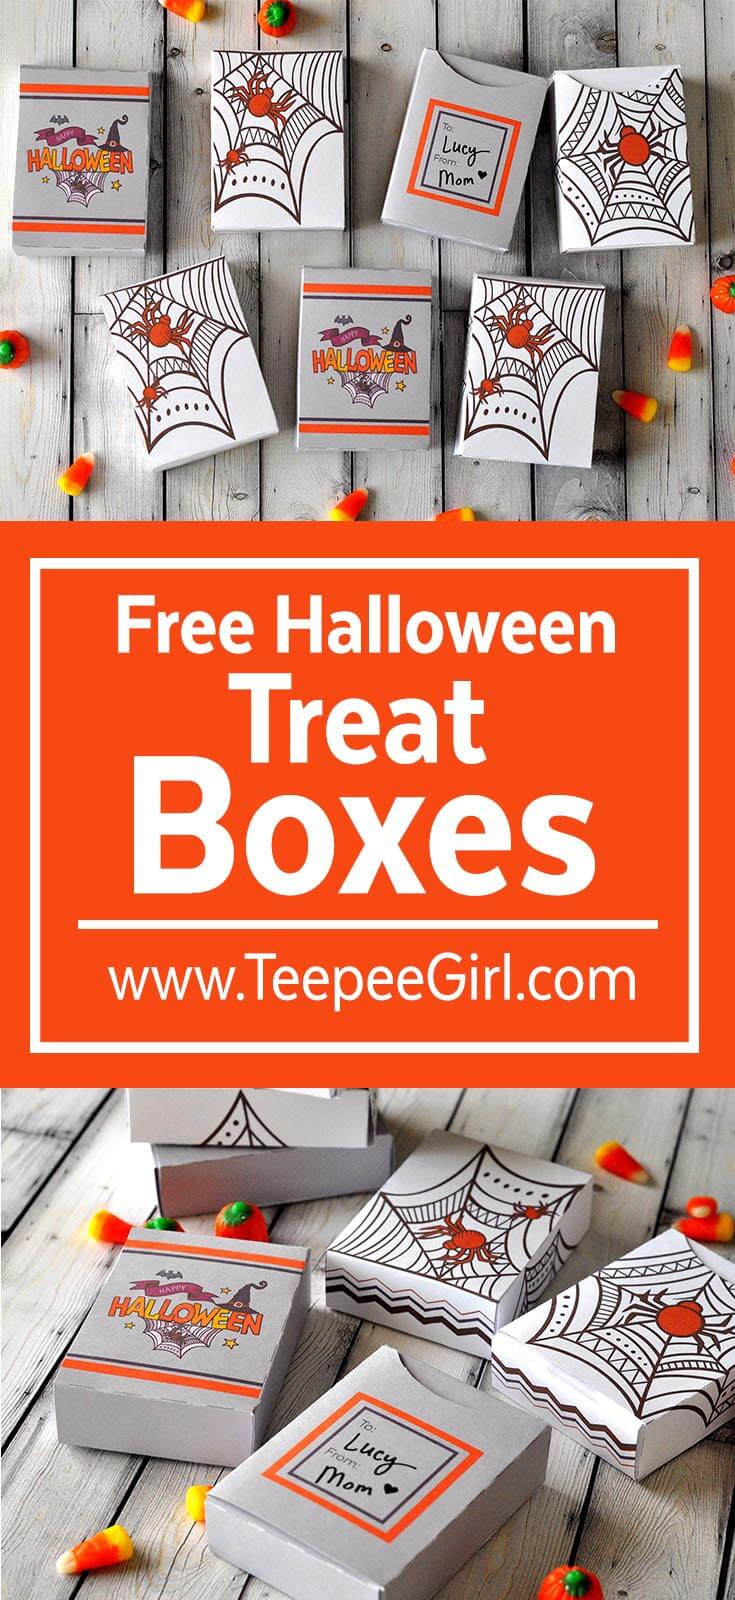 These free Halloween treat boxes are the perfect way to share treats and toys this holiday season! You can fill these boxes with candy, toys, crayons...anything! They are easy to put together and so cute! Grab them at www.Teepeegirl.com